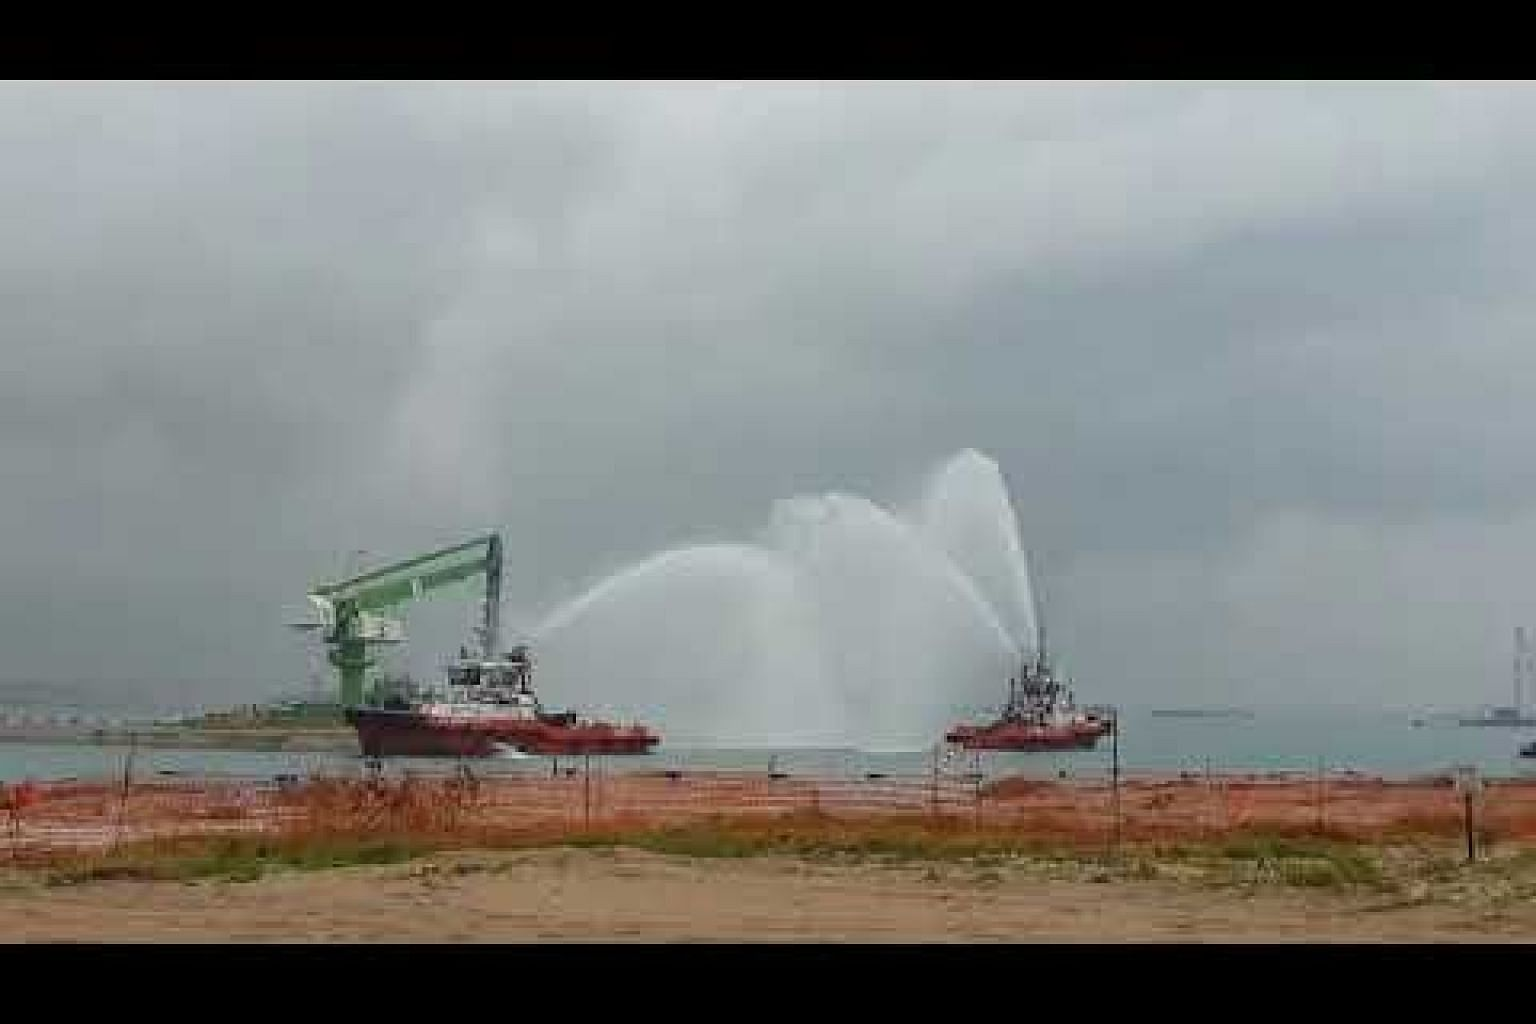 Water cannons fire off at the location of the future Tuas port